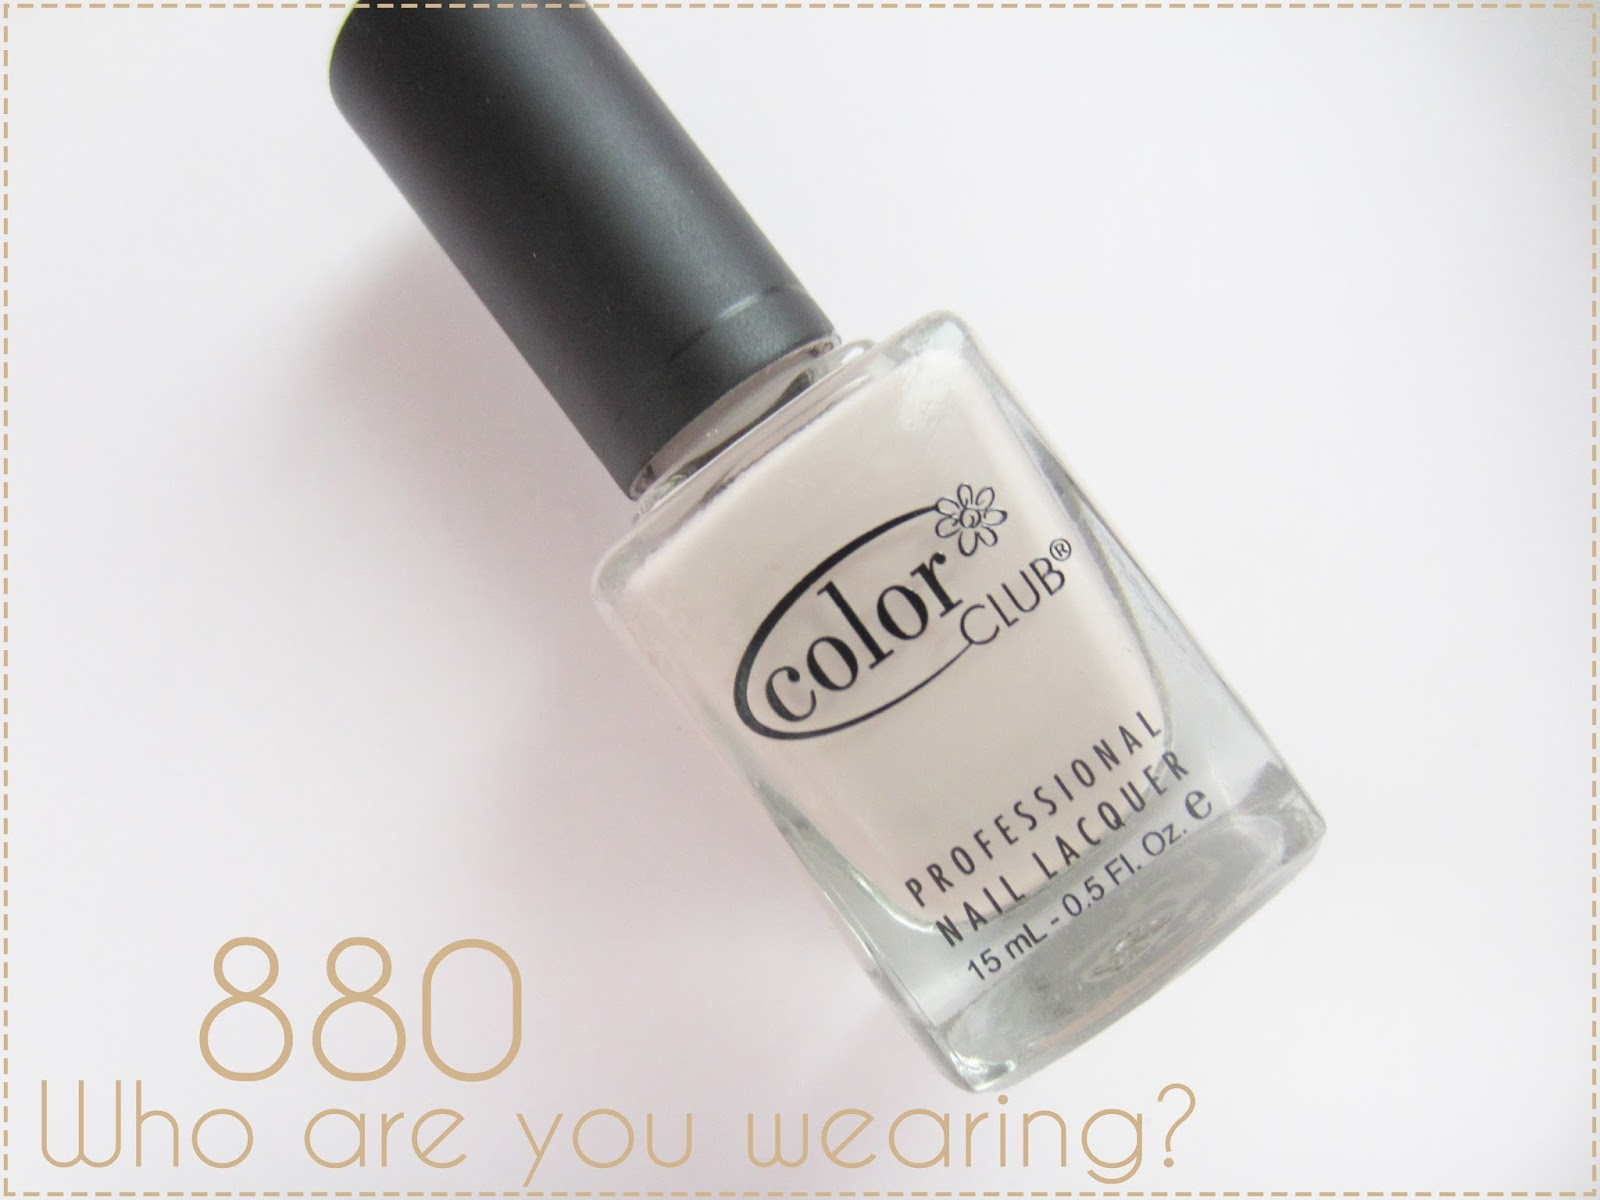 WHO ARE YOU WEARING? - 880 COLOR CLUB